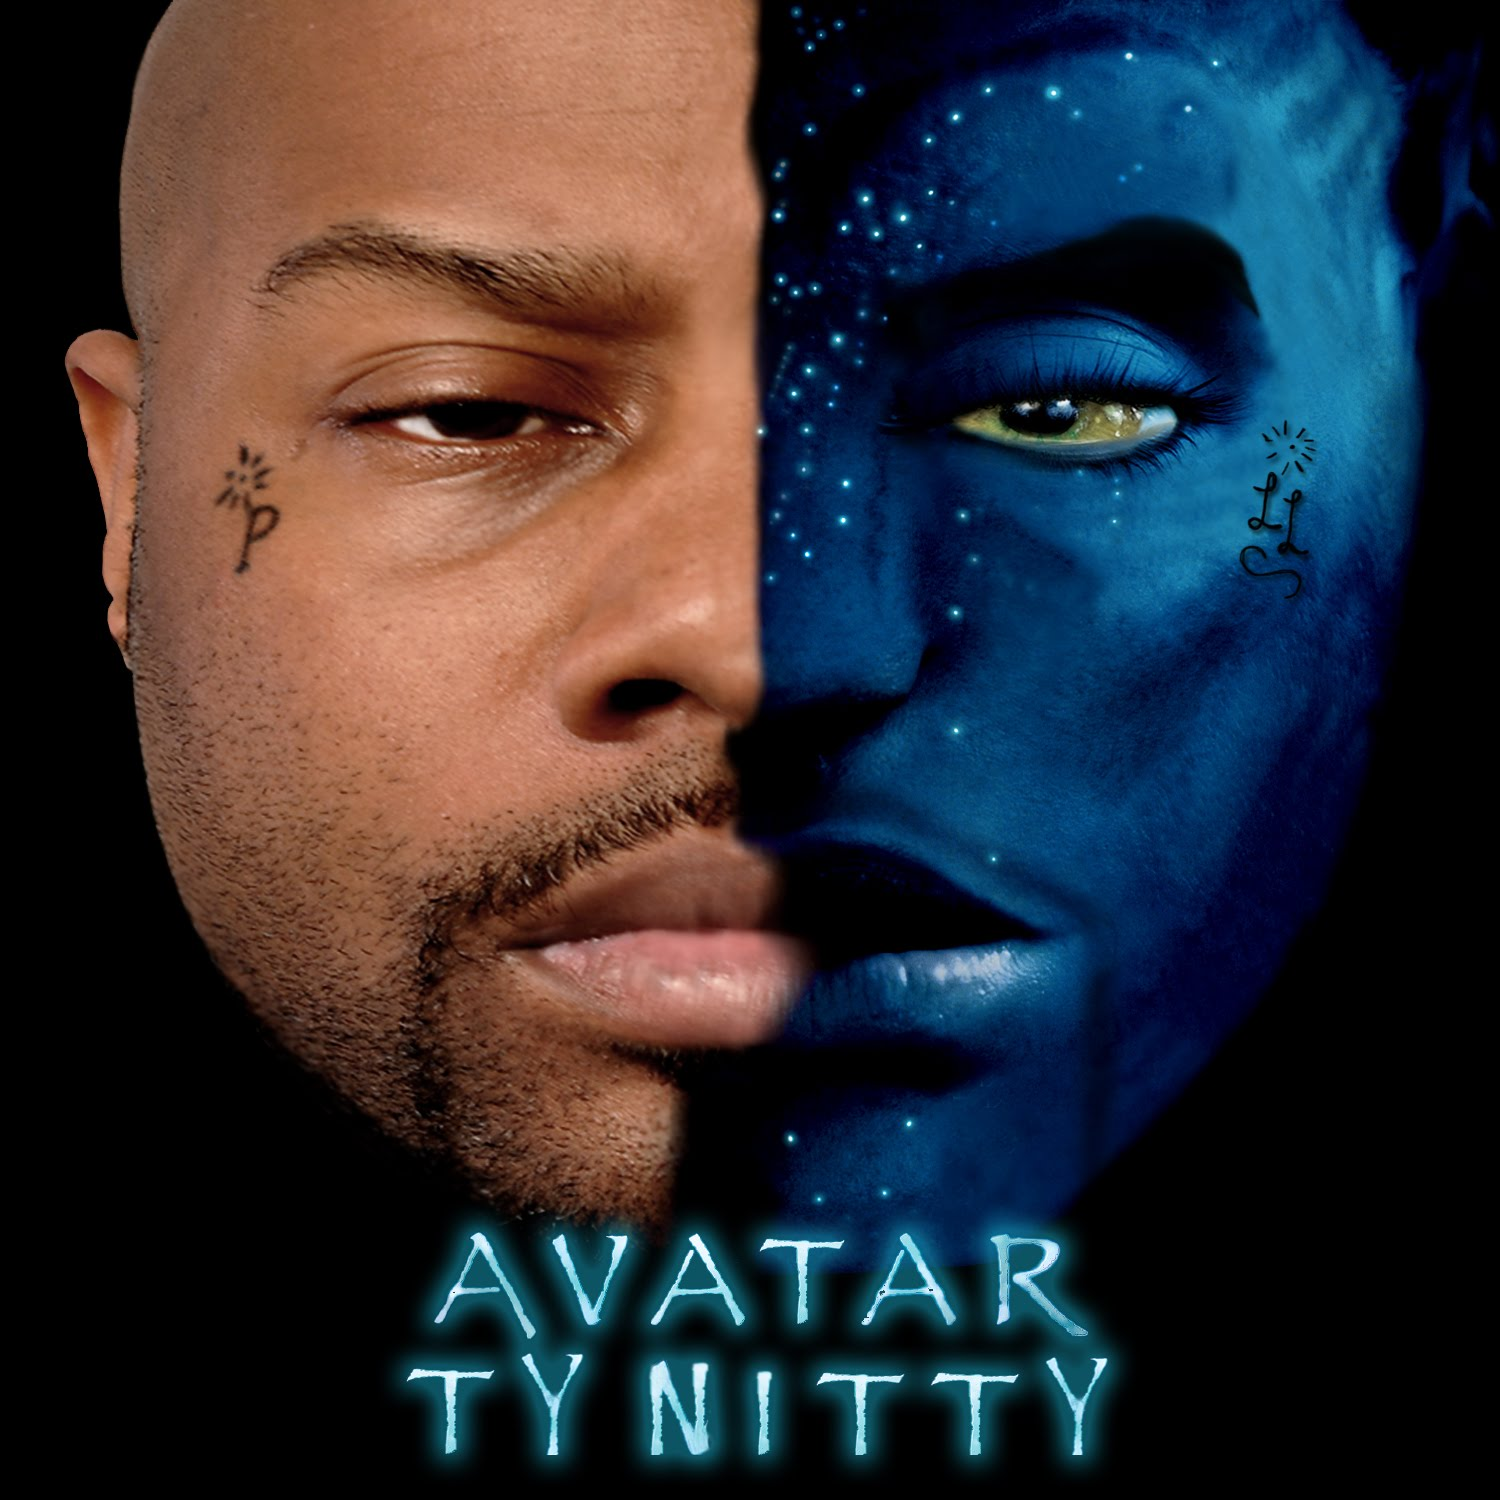 Avatar 2 Mp3: Queens-HipHop.com: (Mixtape Download) AVATAR TY NITTY